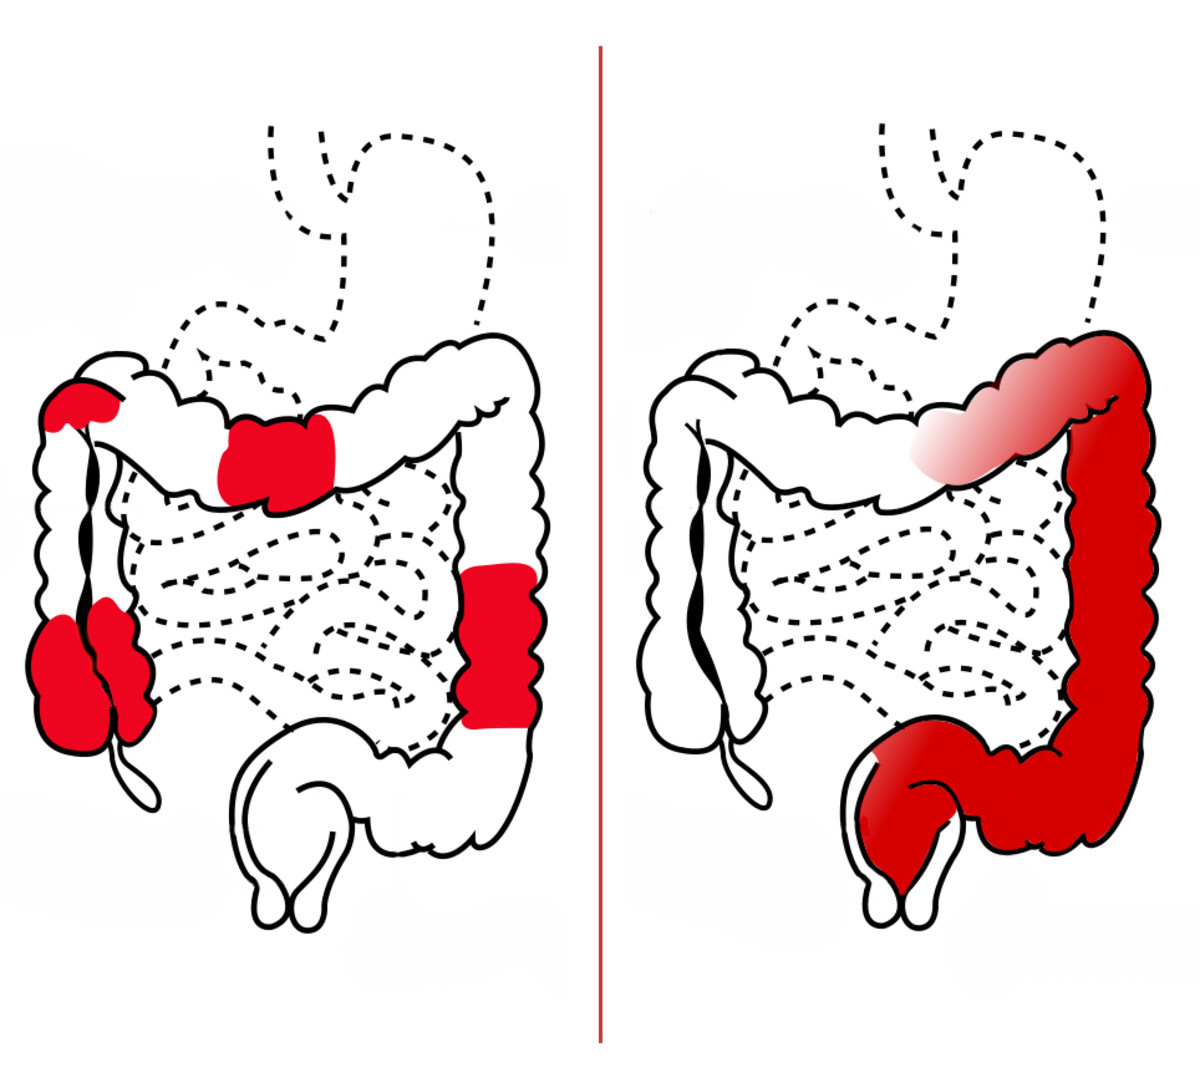 Crohn's disease (left) affects the large intestine differently than ulcerative colitis (right).